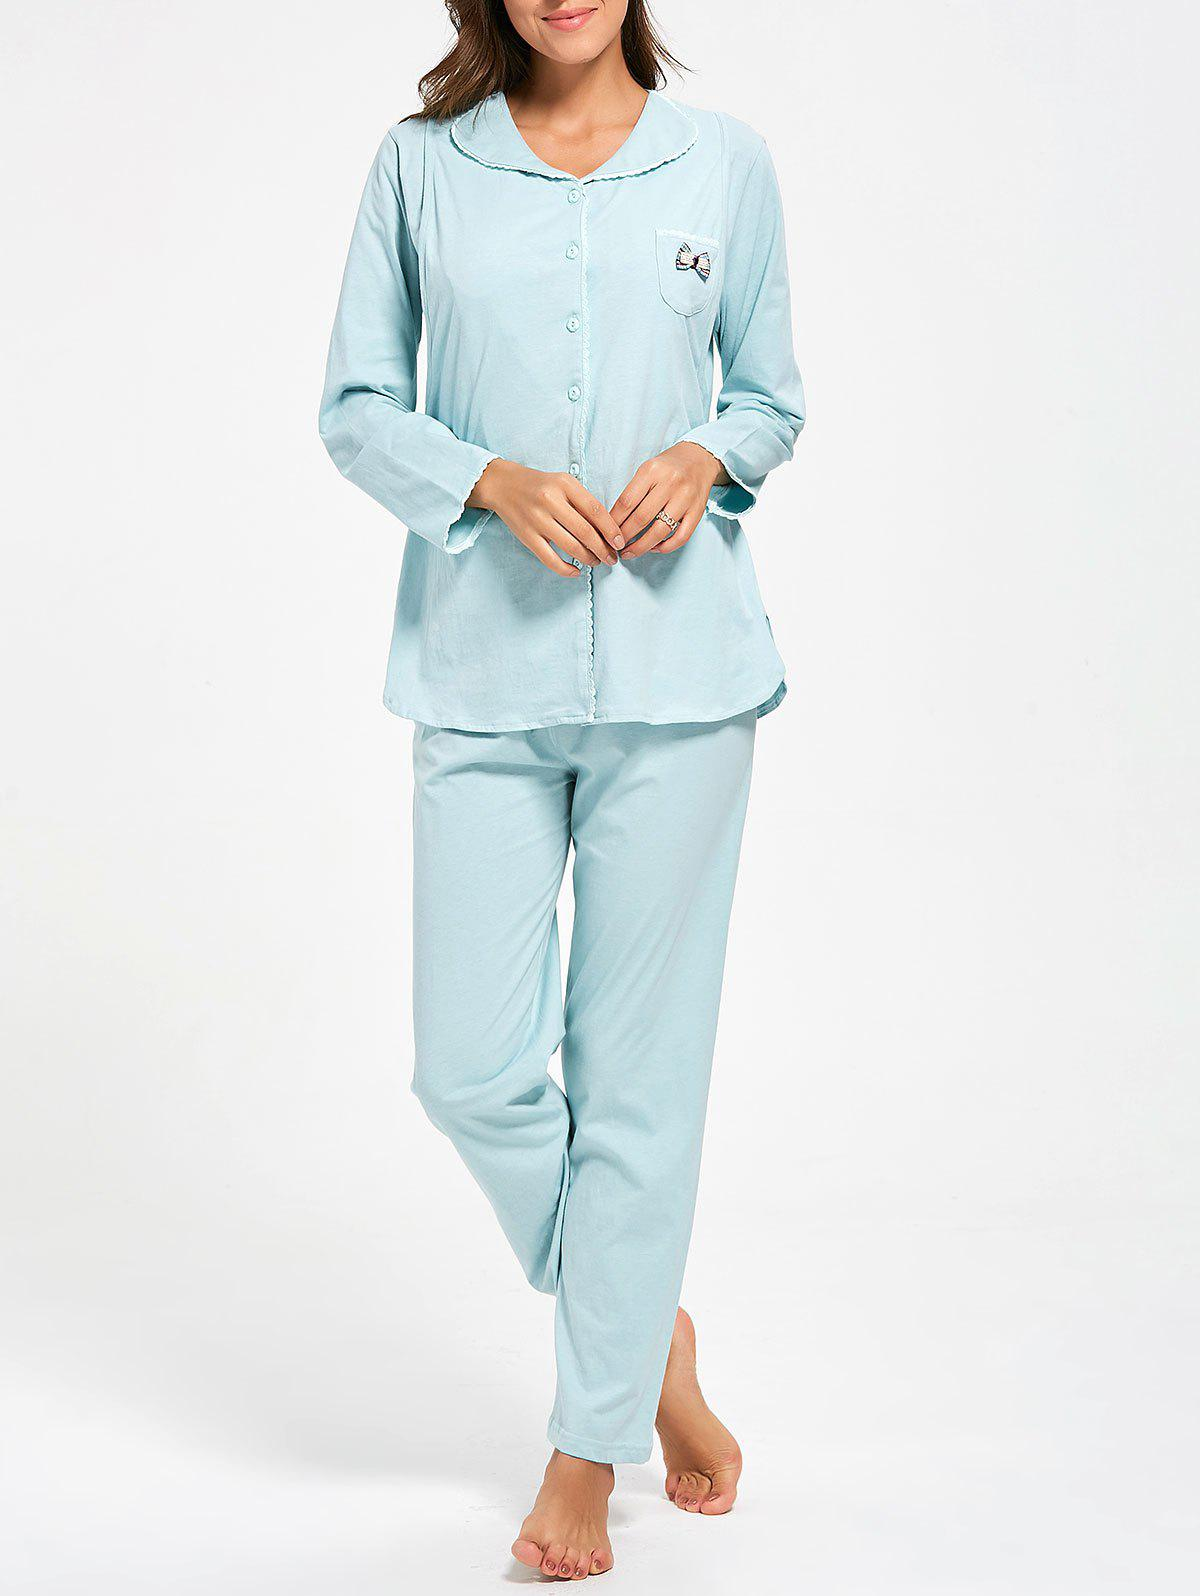 Cotton Button Up Nursing Pajamas Set - LIGHT BLUE XL